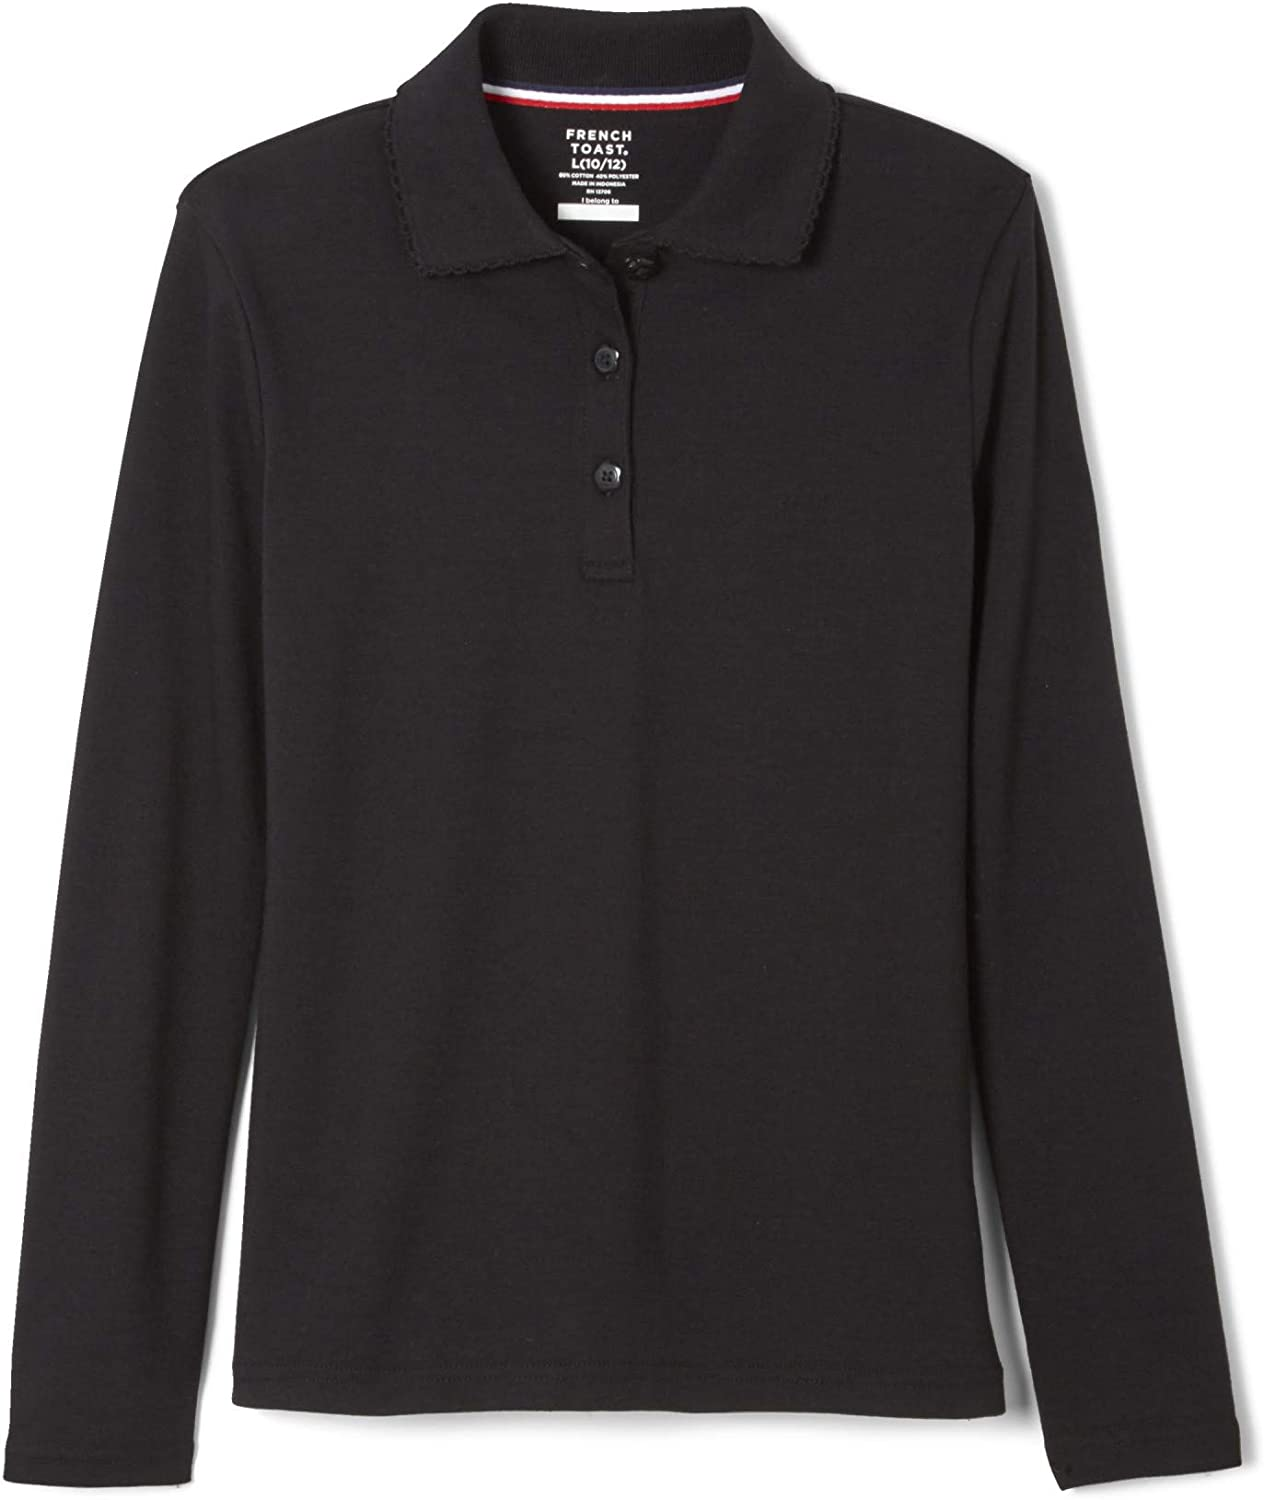 French Toast School Uniform Girls Long Sleeve Polo with Picot Collar, Black